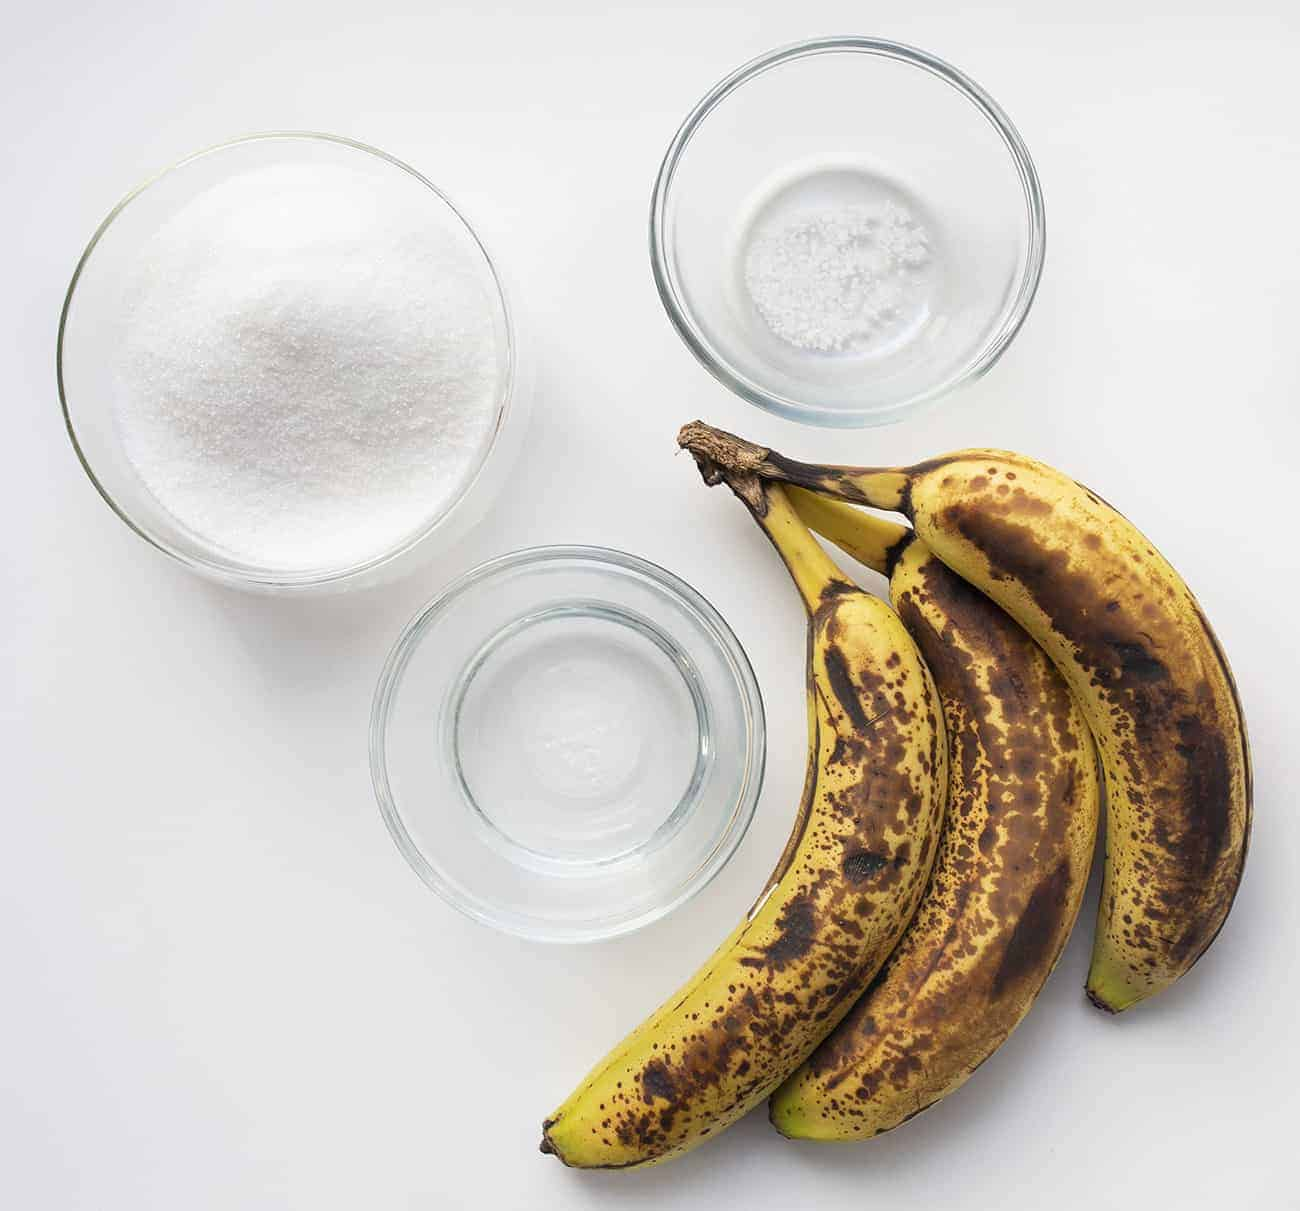 Ingredients for Banana Simple Syrup